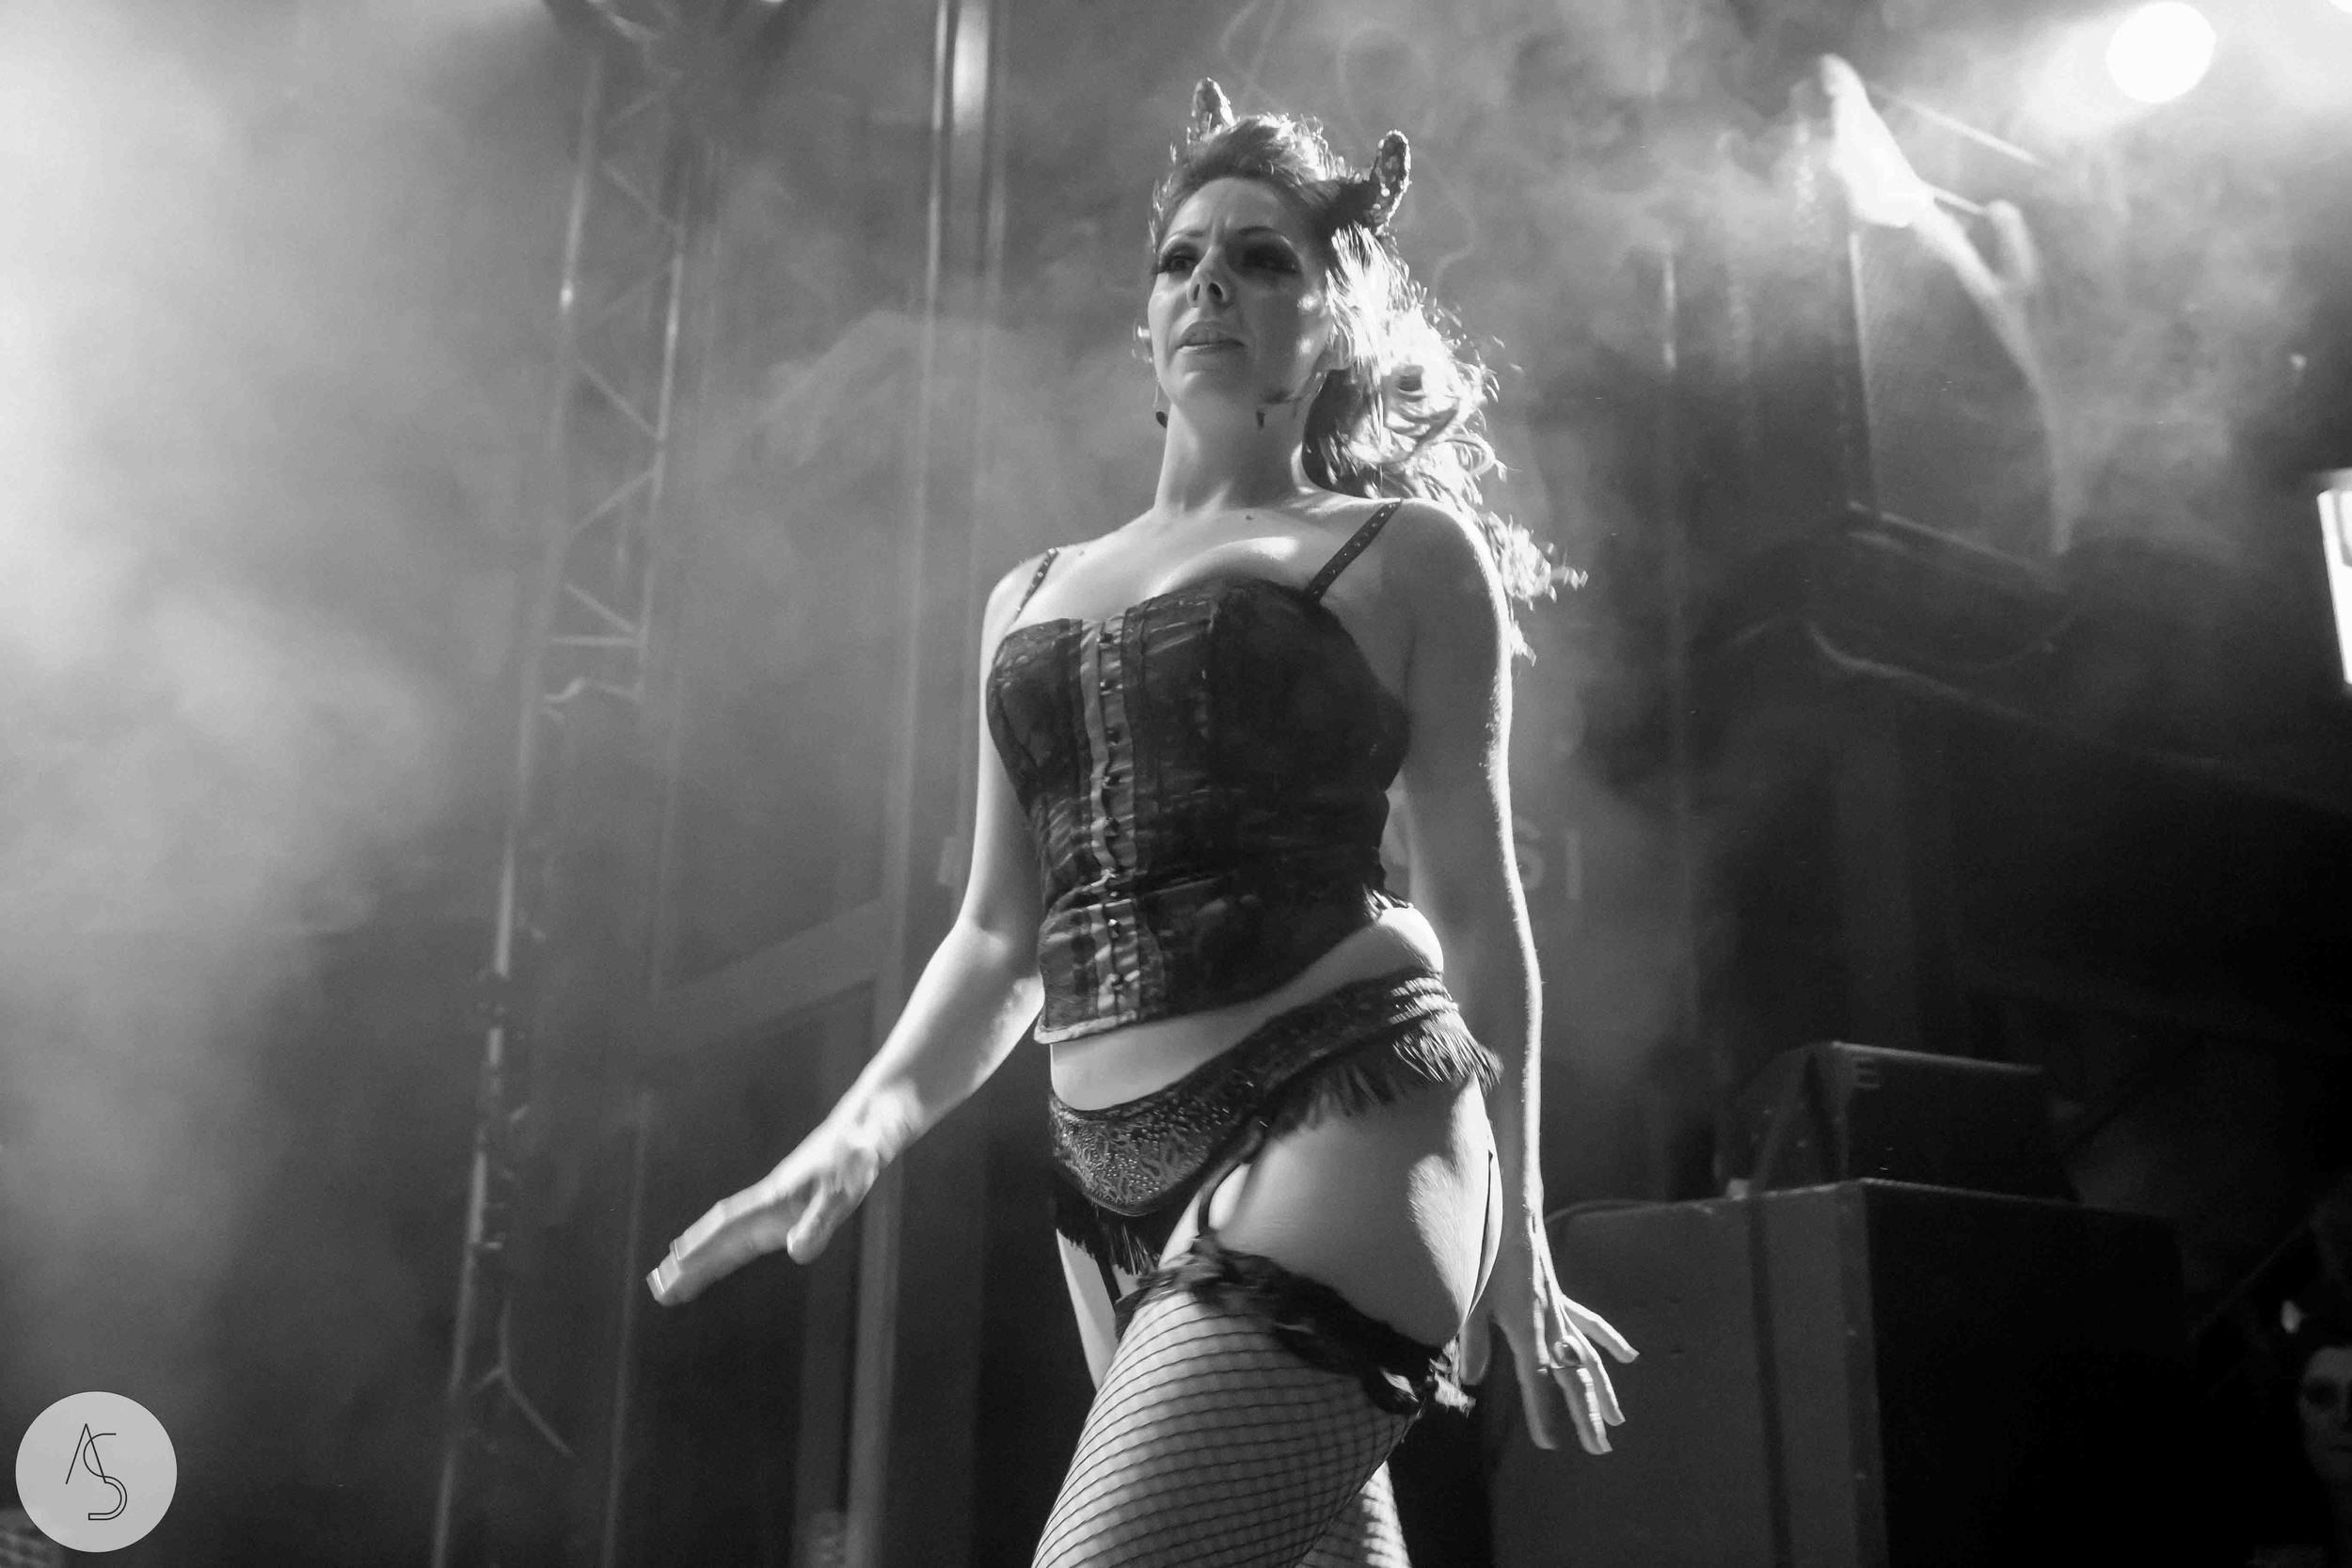 Electro swing cabaret - Ninkasi- photographe evenements - Adriana Salazar photo-192.jpg